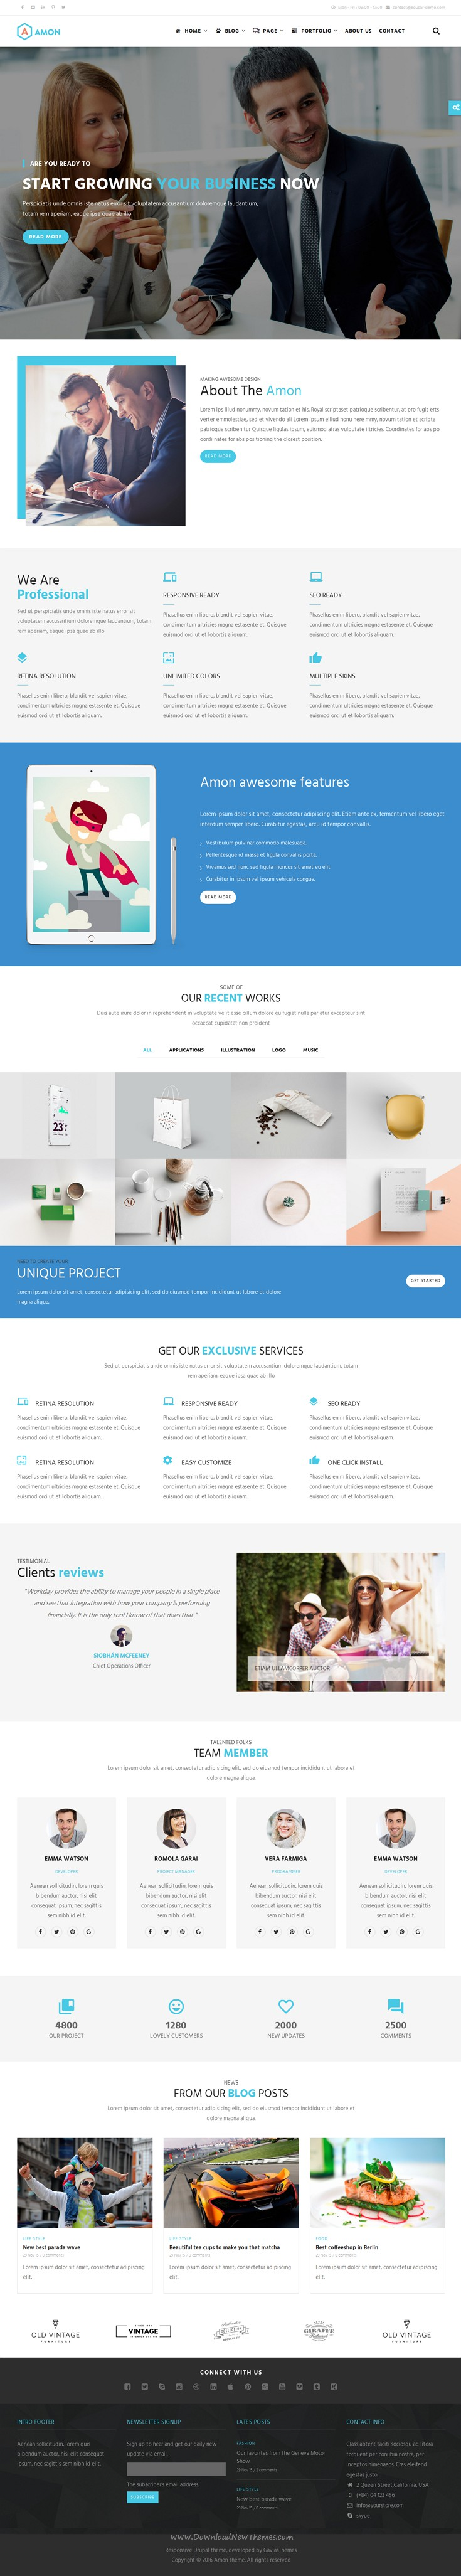 Amon Theme Is Modern And Professional Responsive Drupal Theme For Business Portfolio Agency An Many More Kinds Of Websites Download Templates Drupal Business Web Design